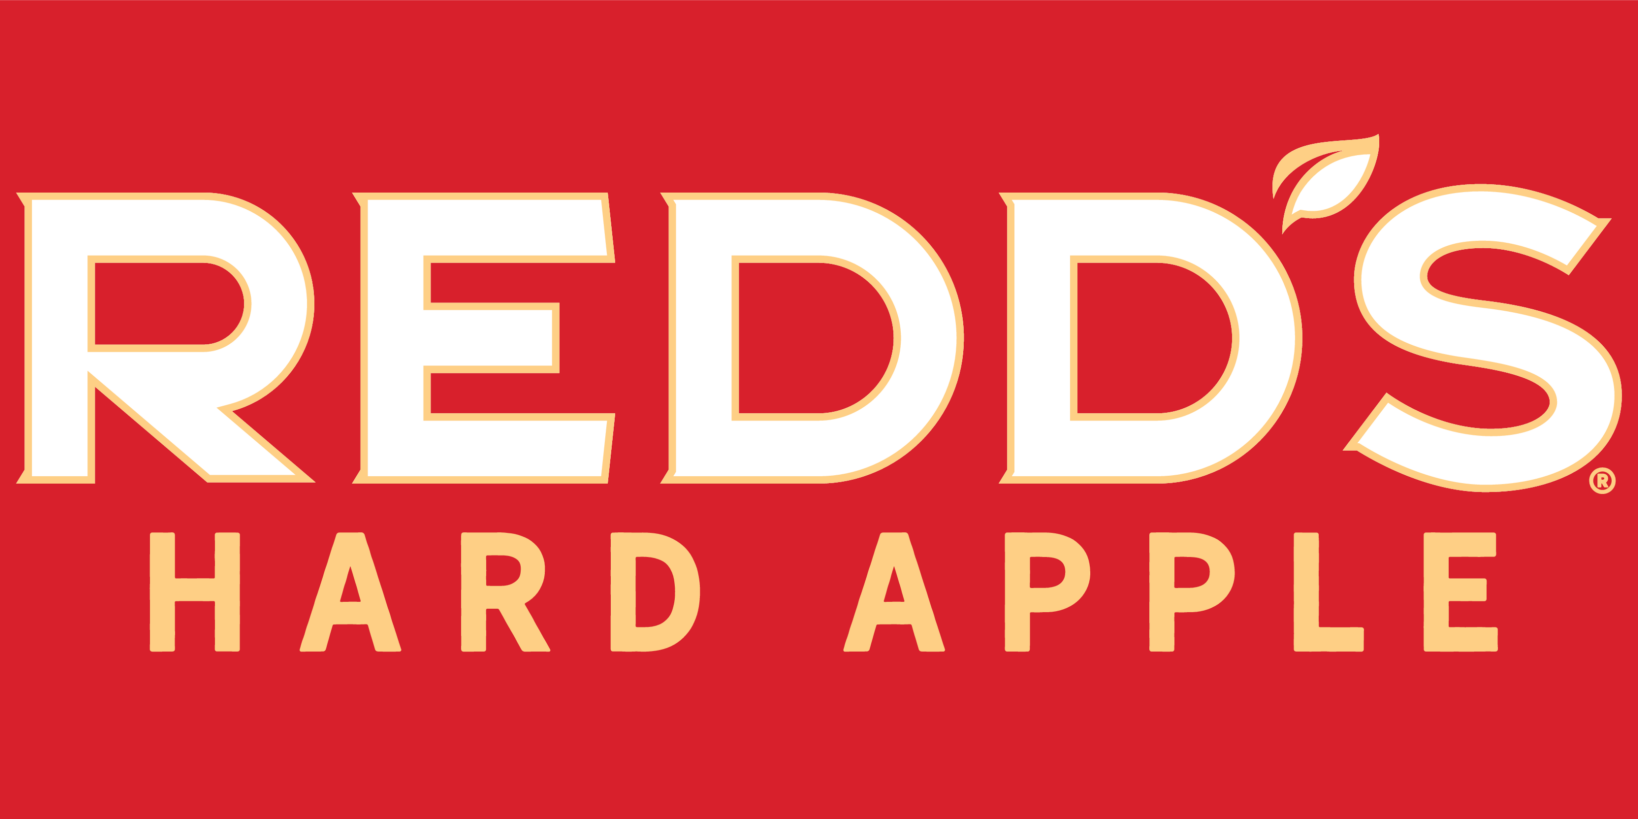 redds hard apple logo